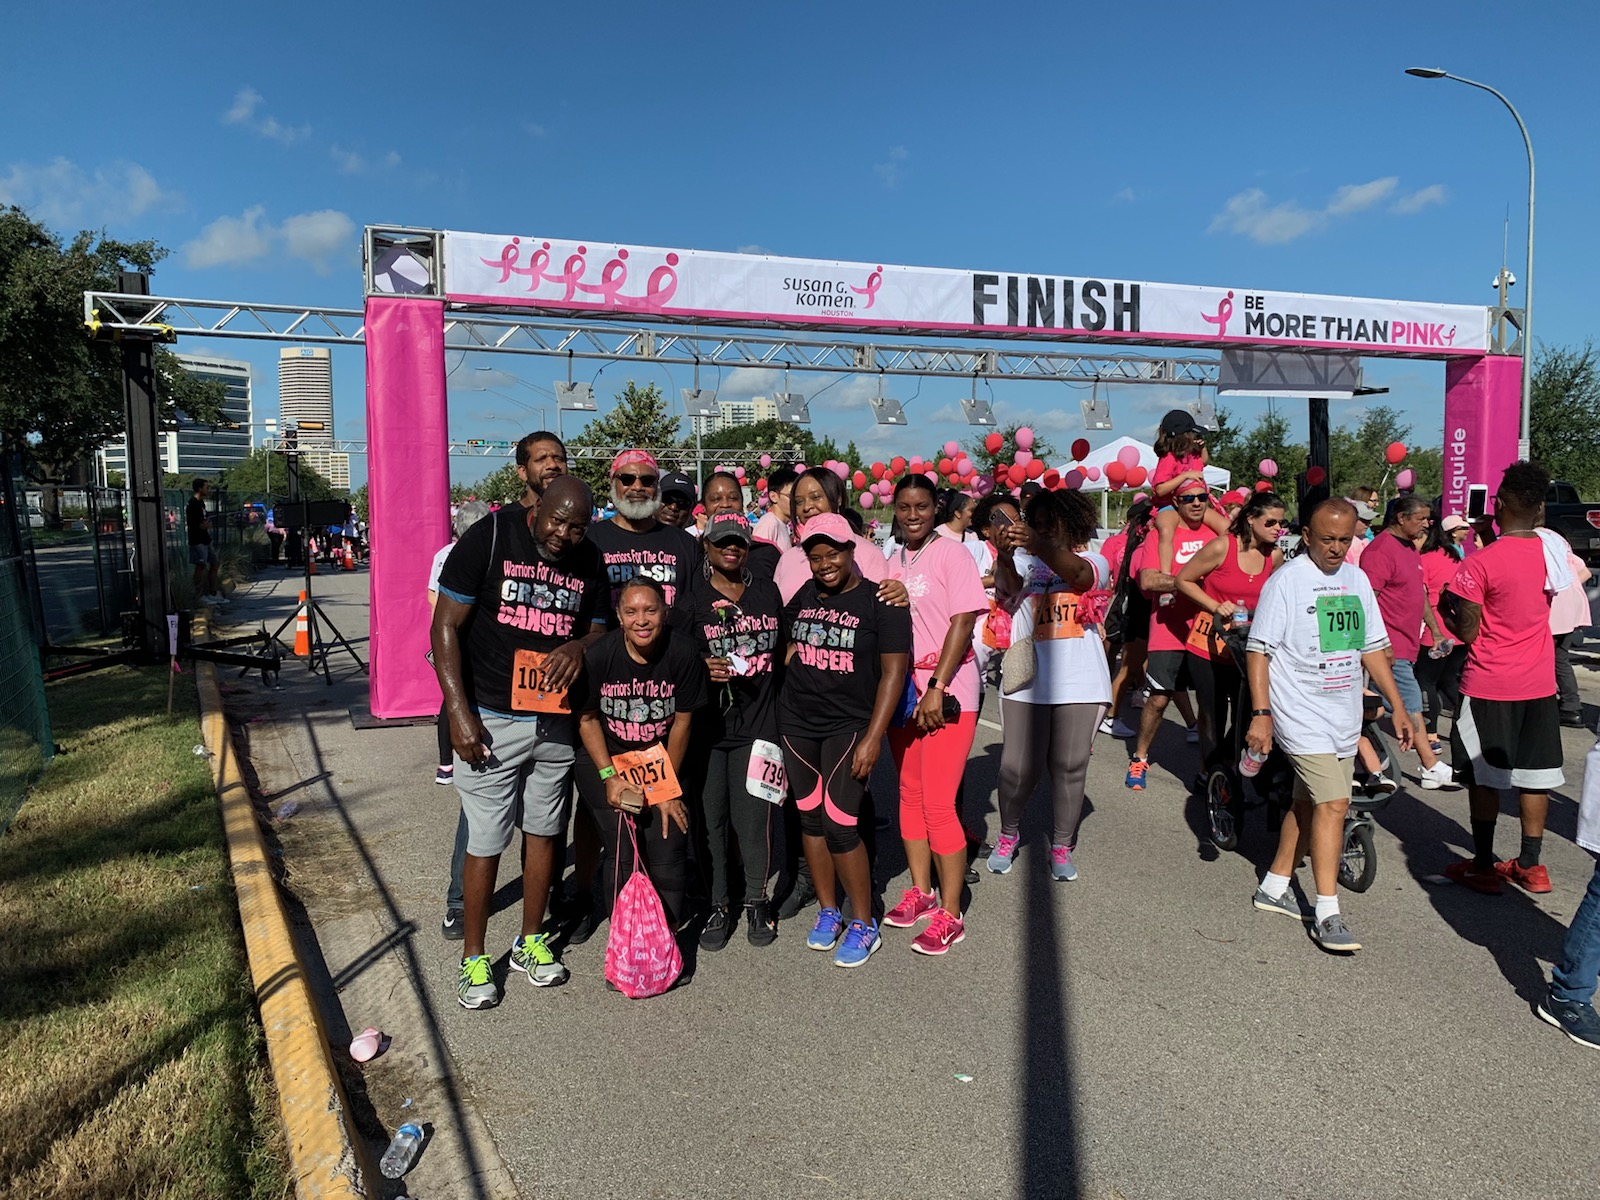 Carla Square celebrating another completed race to raise awareness and research dollars for breast cancer.